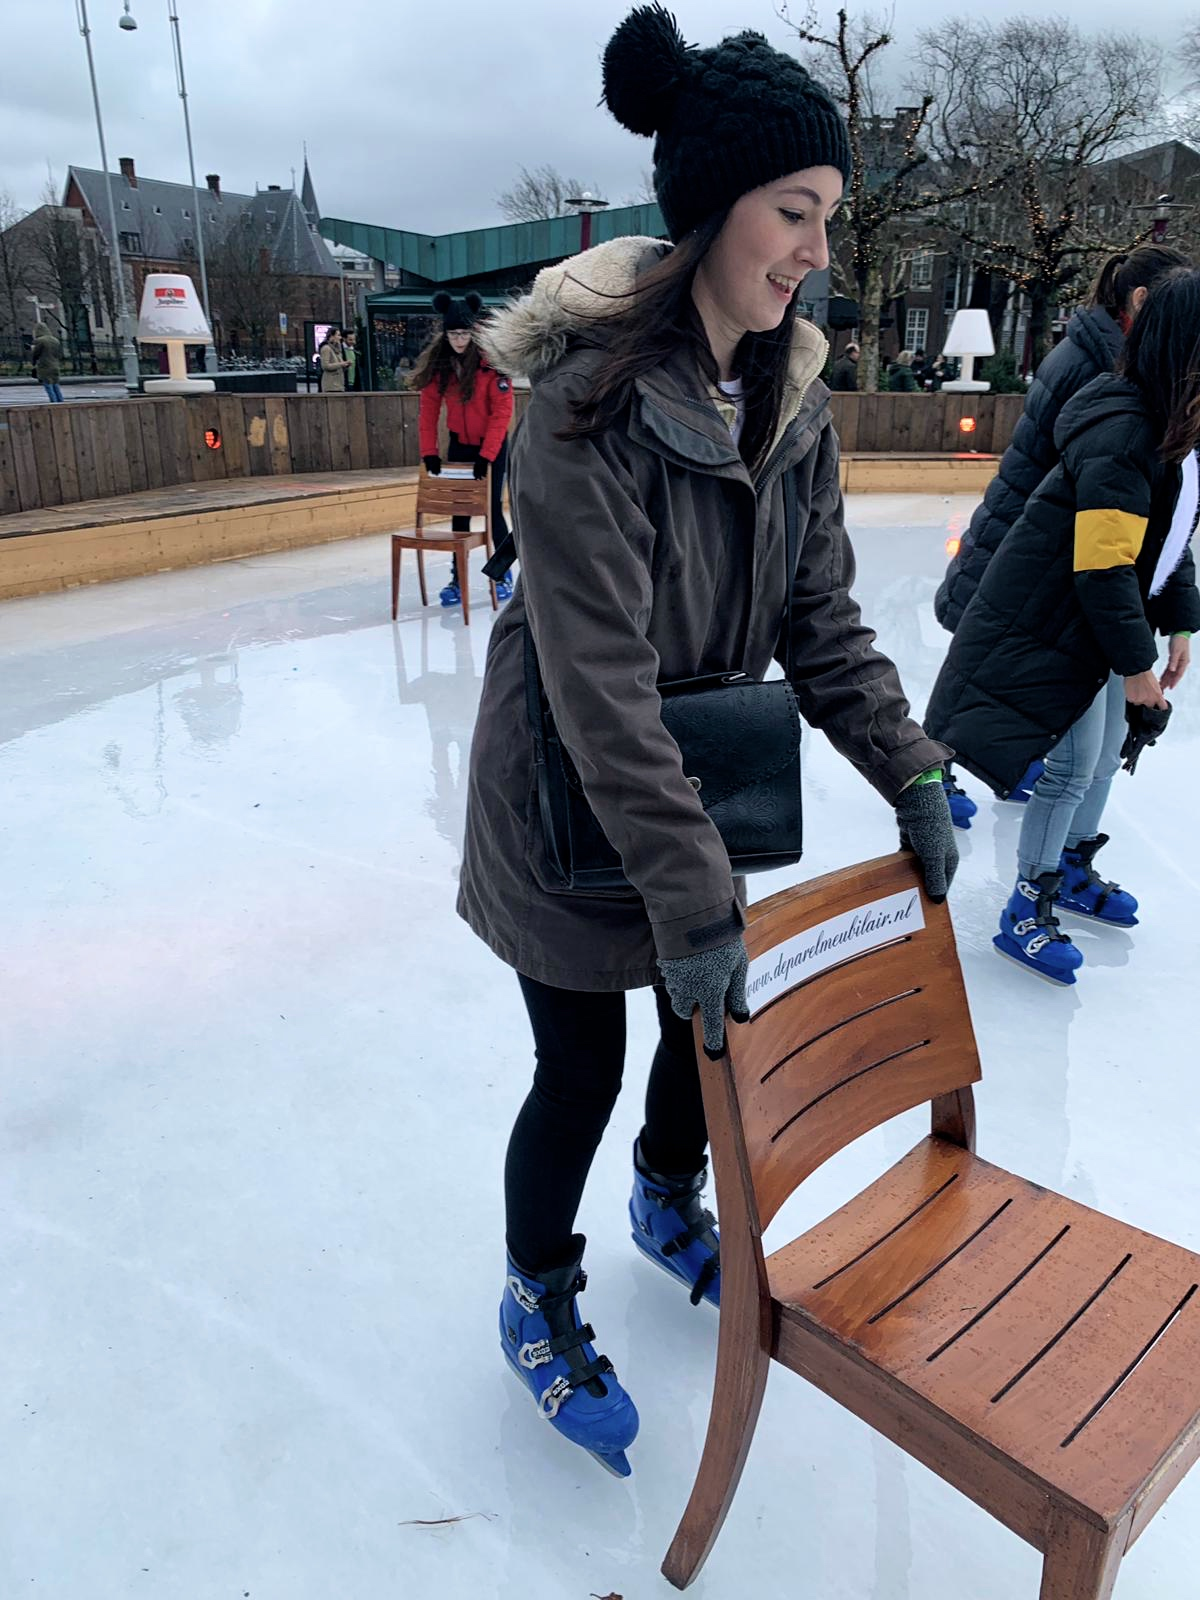 Me skating with a wooden chair